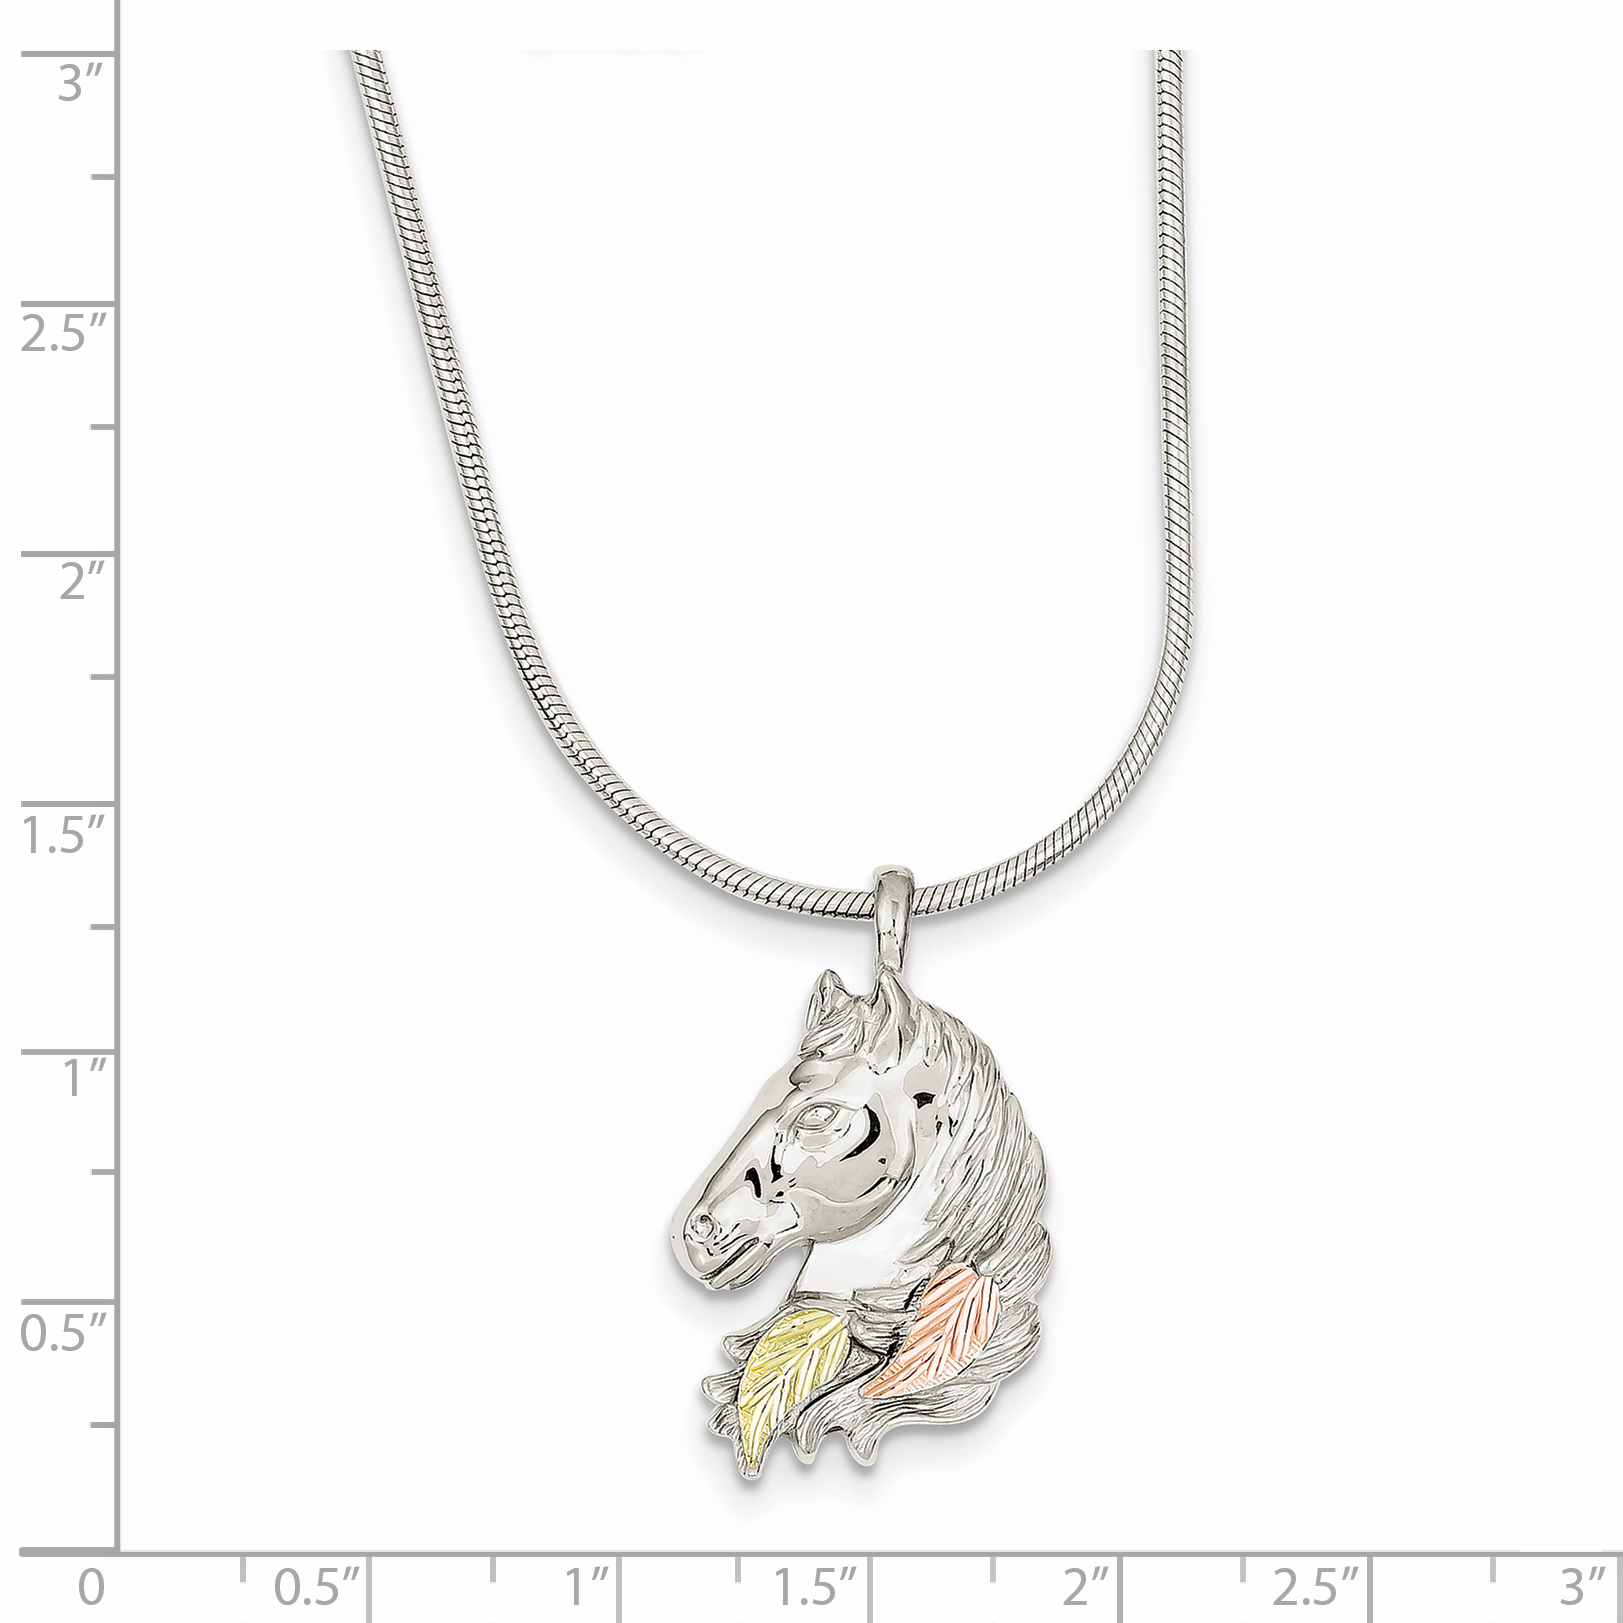 925 Sterling Silver 12k Lg Horsehead Chain Necklace Pendant Charm Animals/insect Fine Jewelry Gifts For Women For Her - image 1 of 2